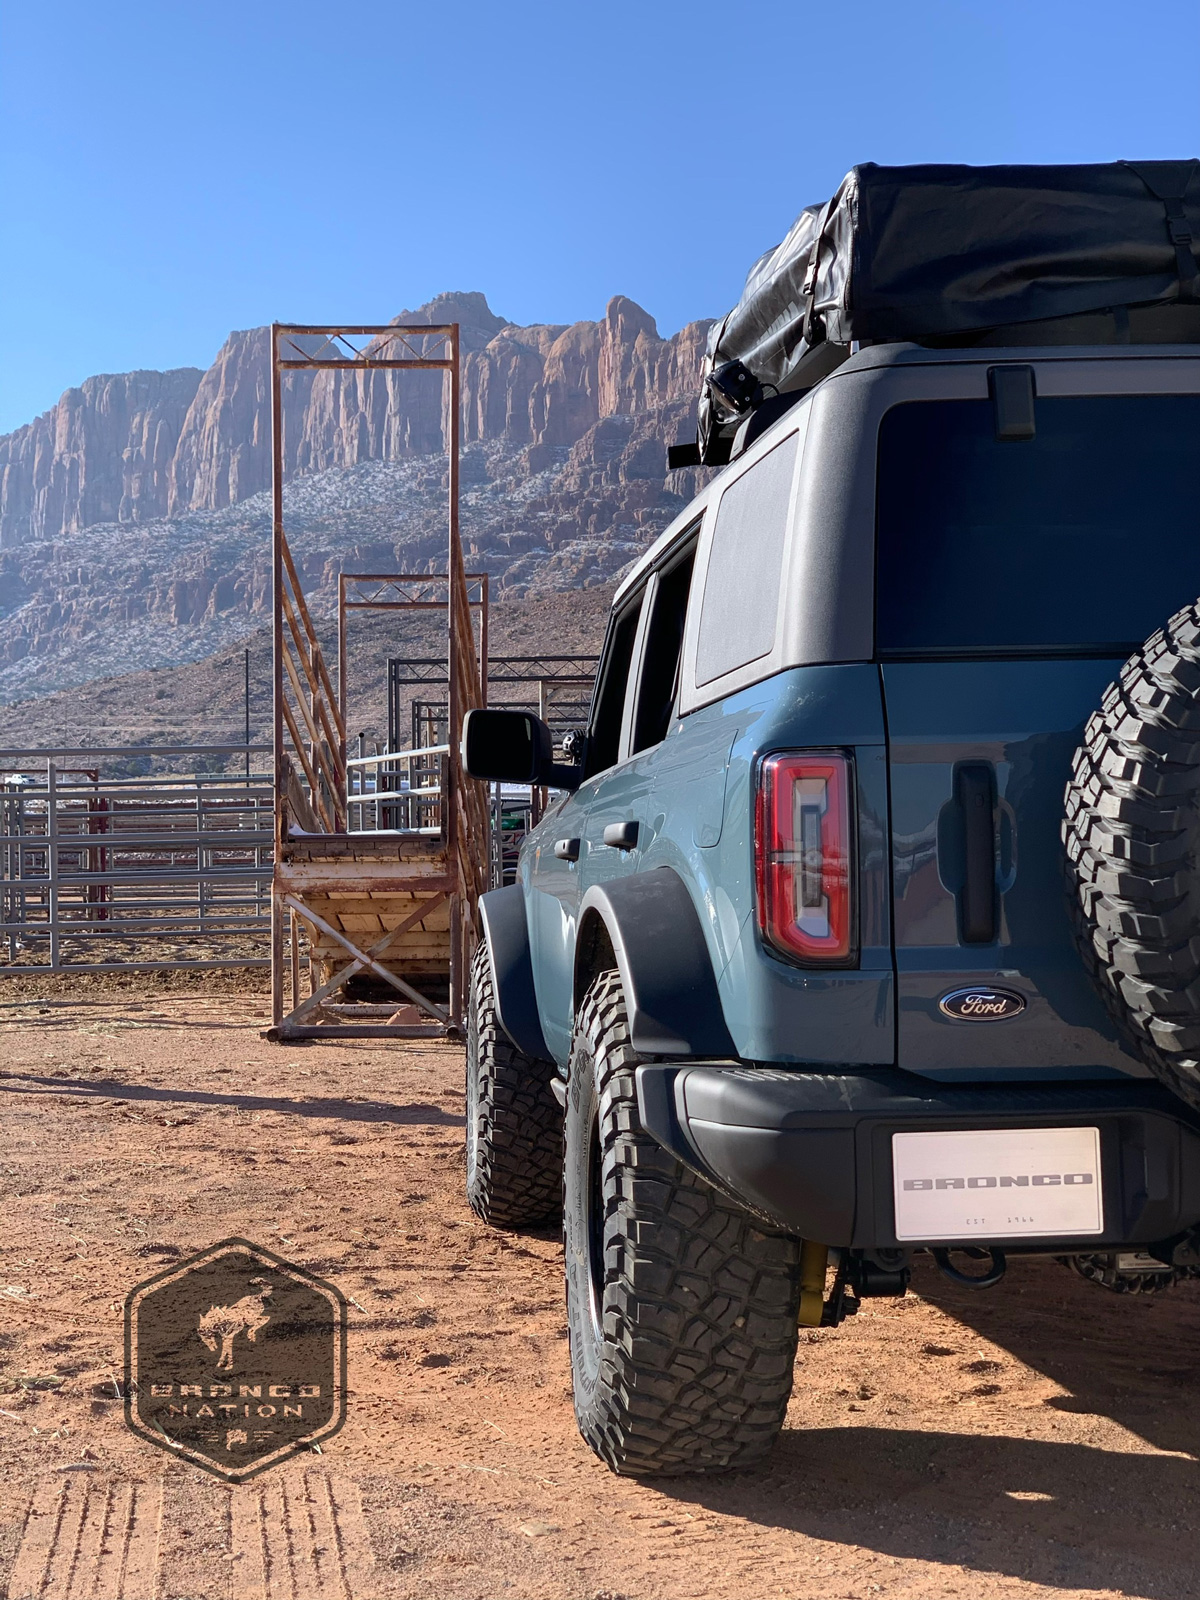 Rear shot of the Bronco with the La Sal mountains in range